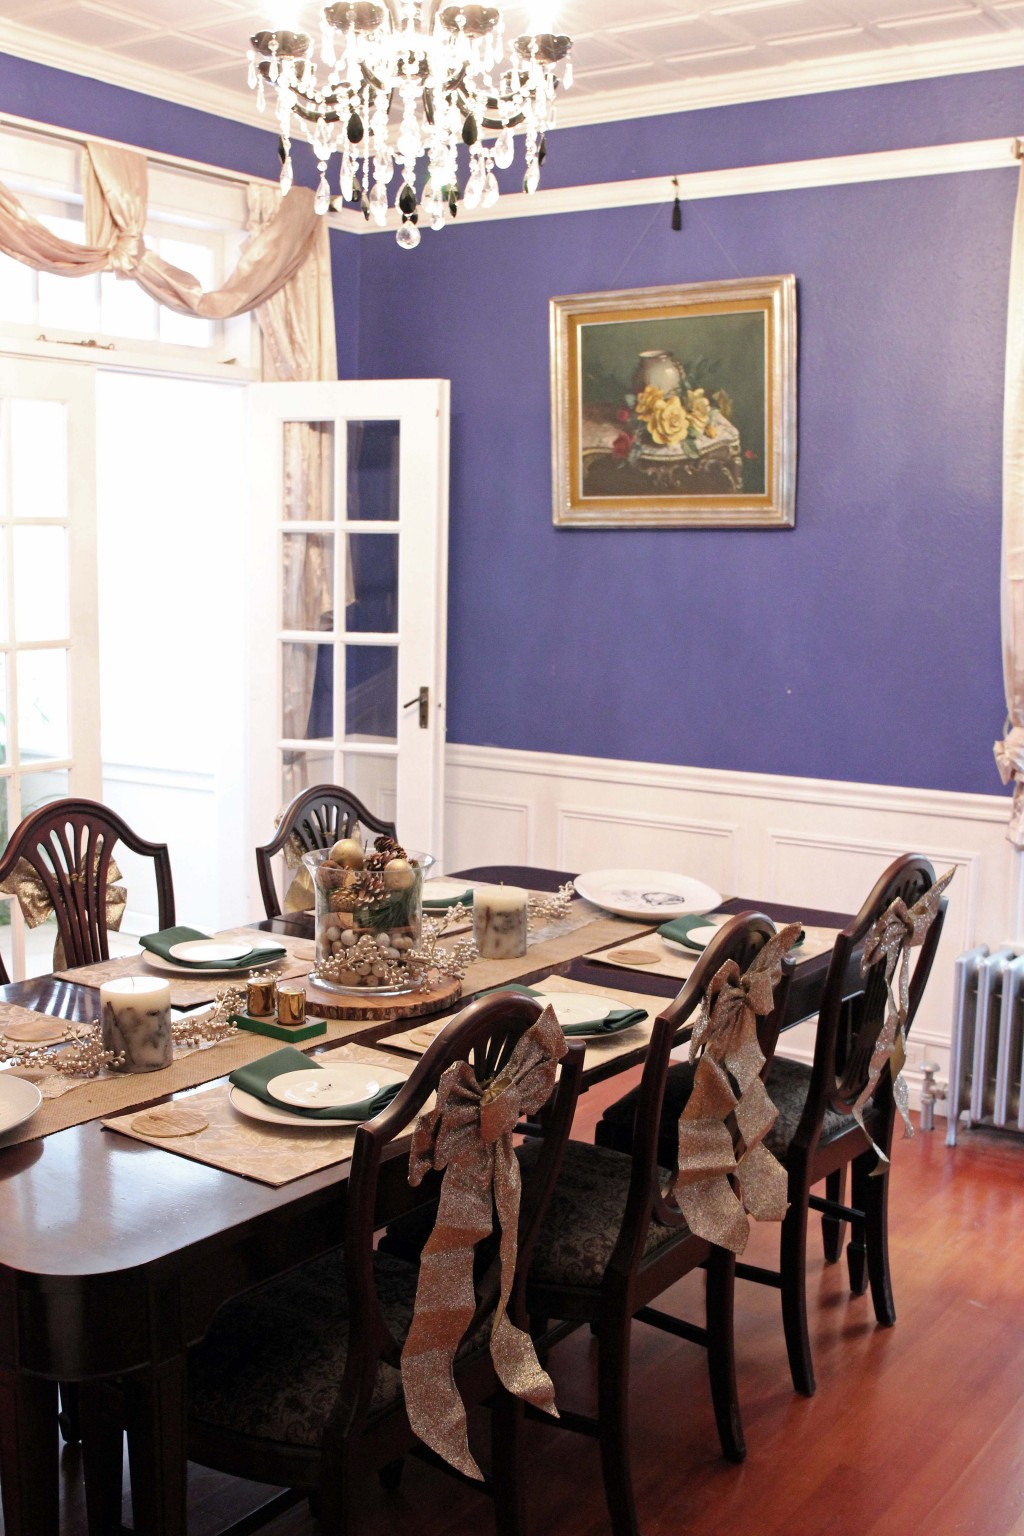 24-historic-downtown-snohomish-home-dining-room